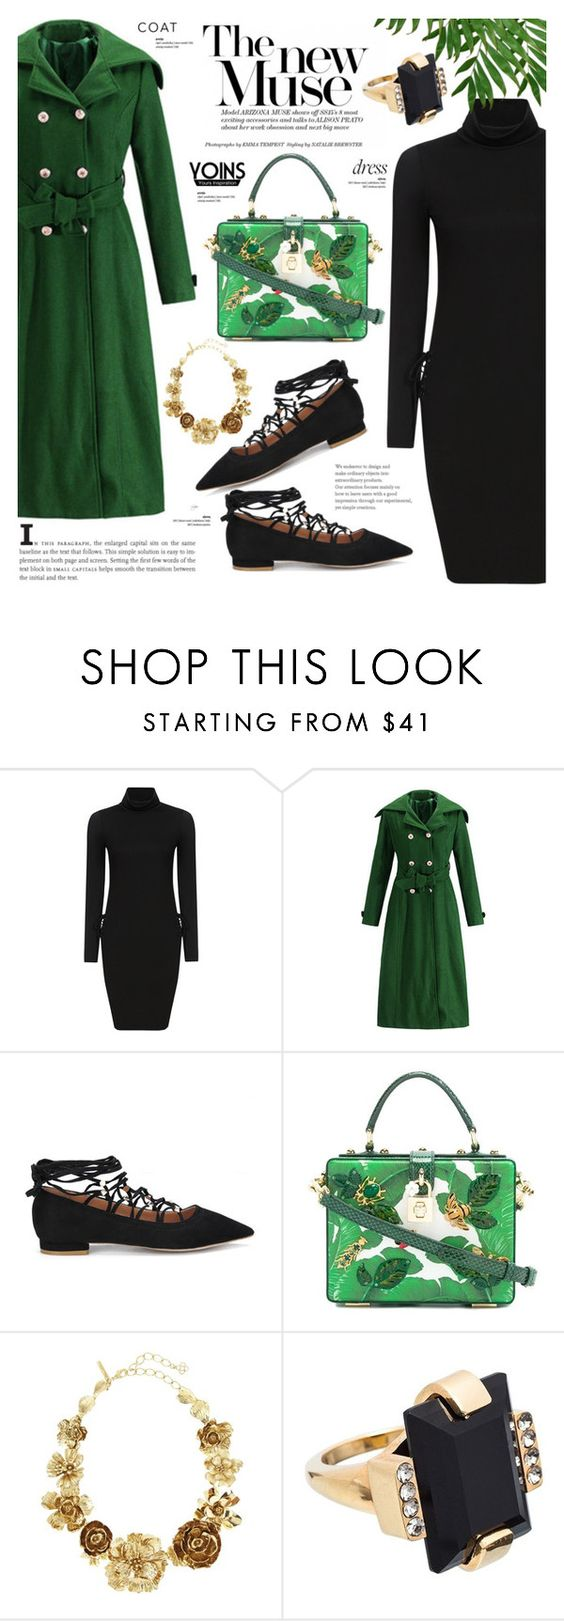 """""""Black dress - Yoins 5.6"""" by cly88 ❤ liked on Polyvore featuring Dolce&Gabbana, Oscar de la Renta and Marni"""